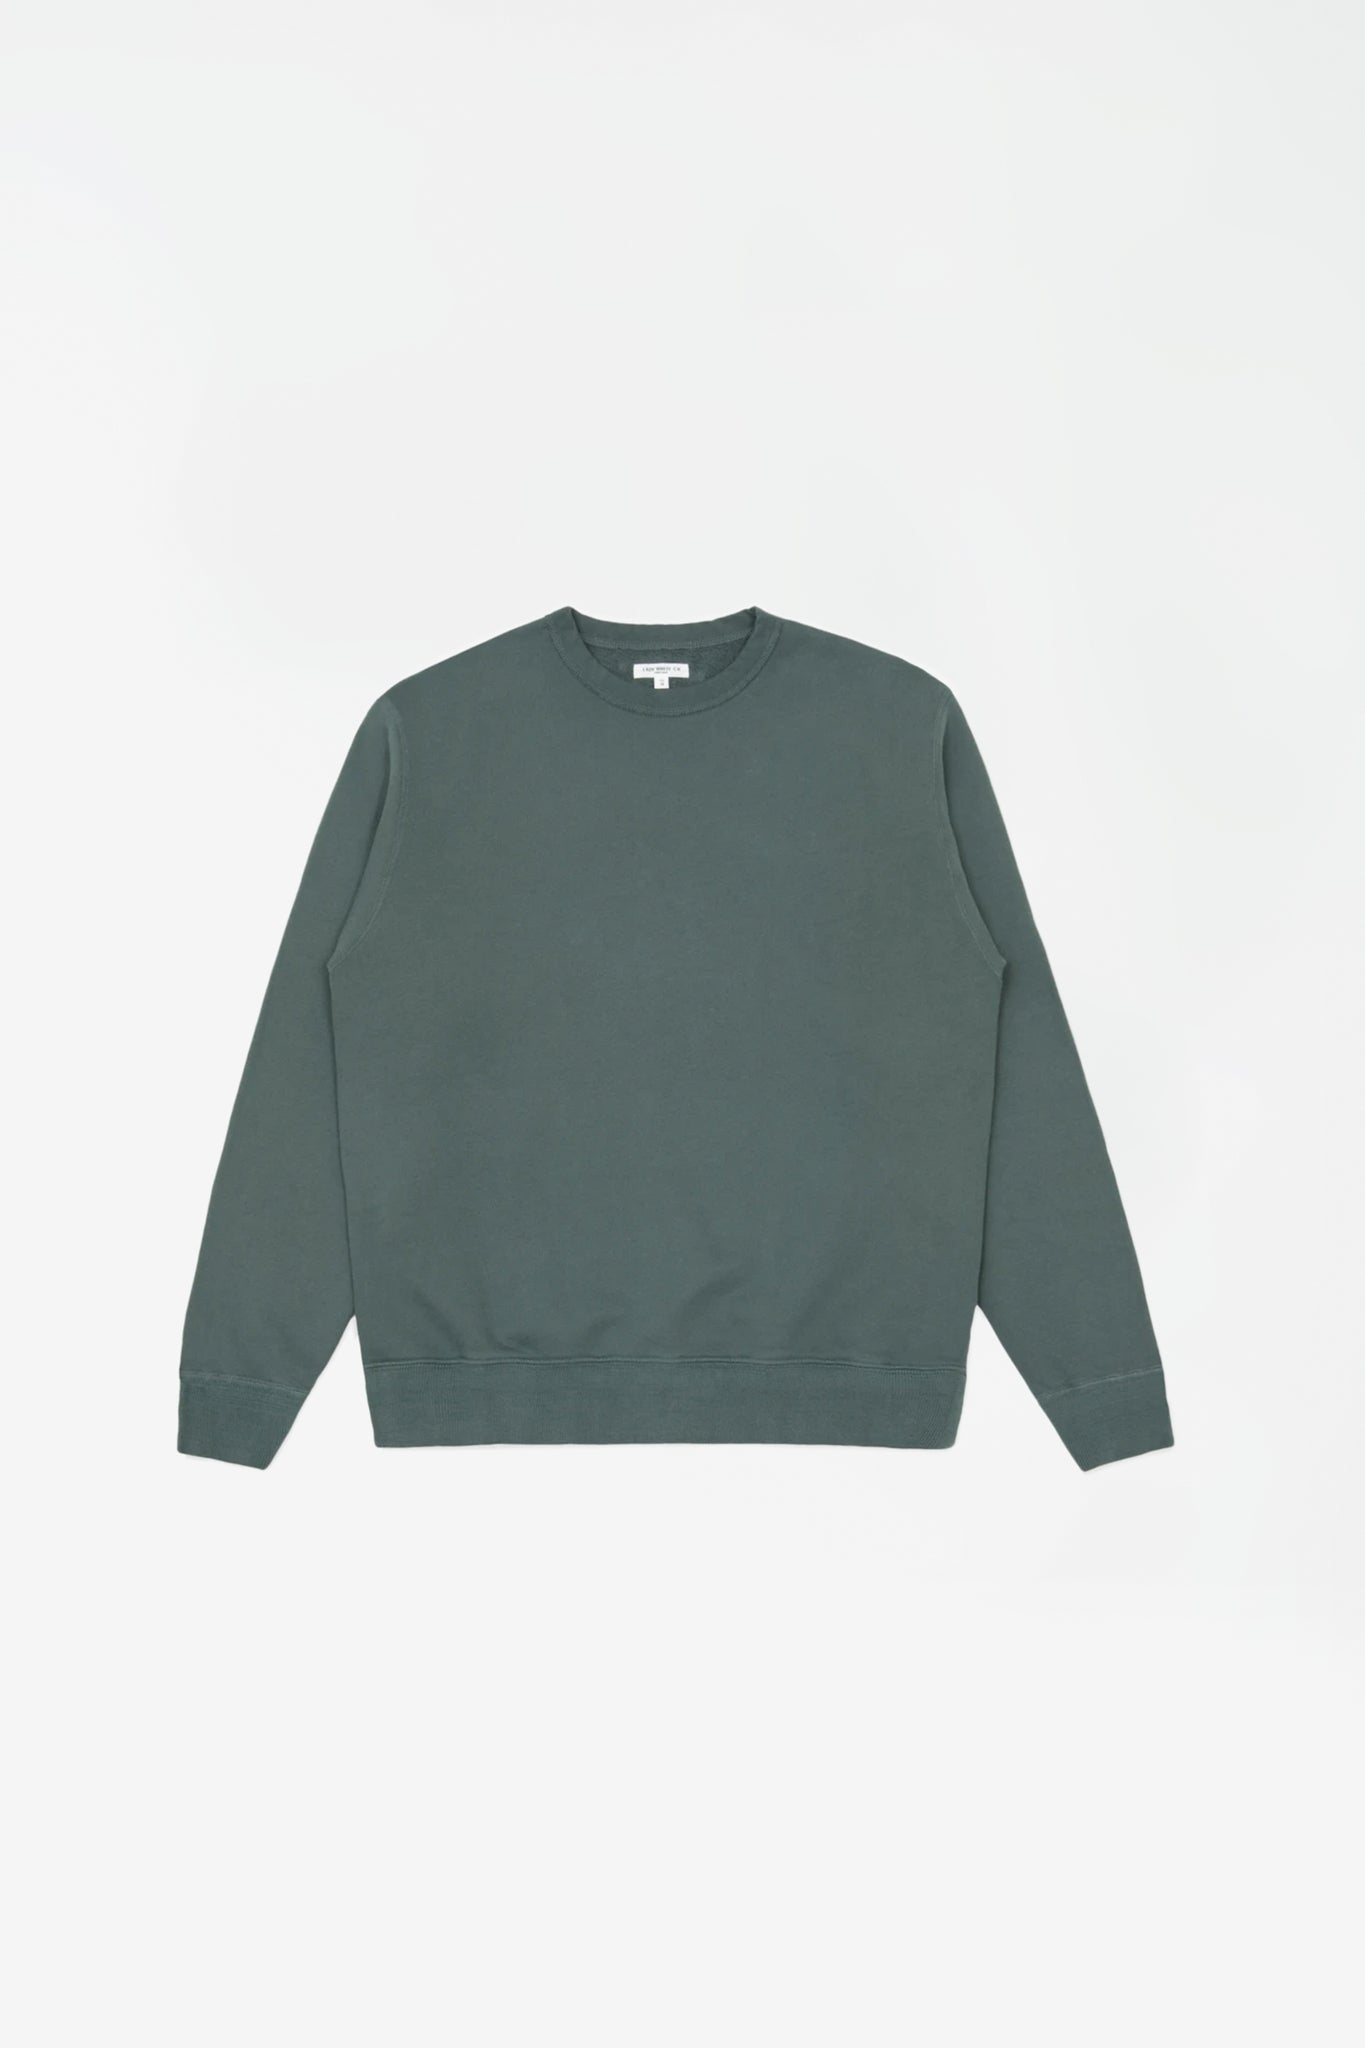 44 Fleece sweatshirt ink green